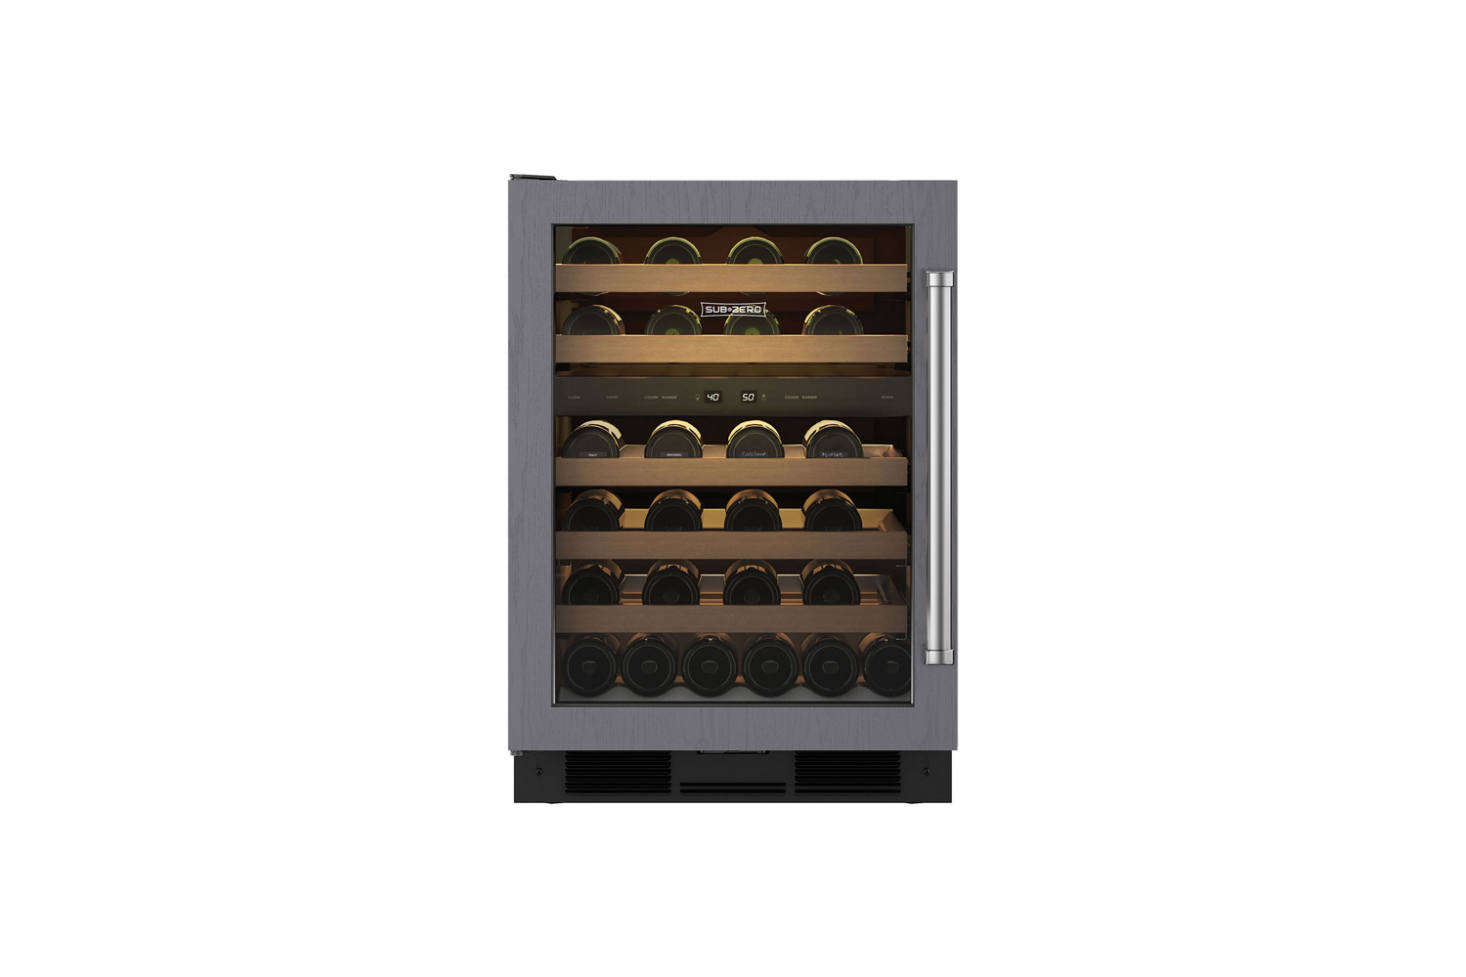 At the end of the counter is a SubZero -Inch Undercounter Wine Refrigerator. Available at AJ Madison; contact for pricing and more information.